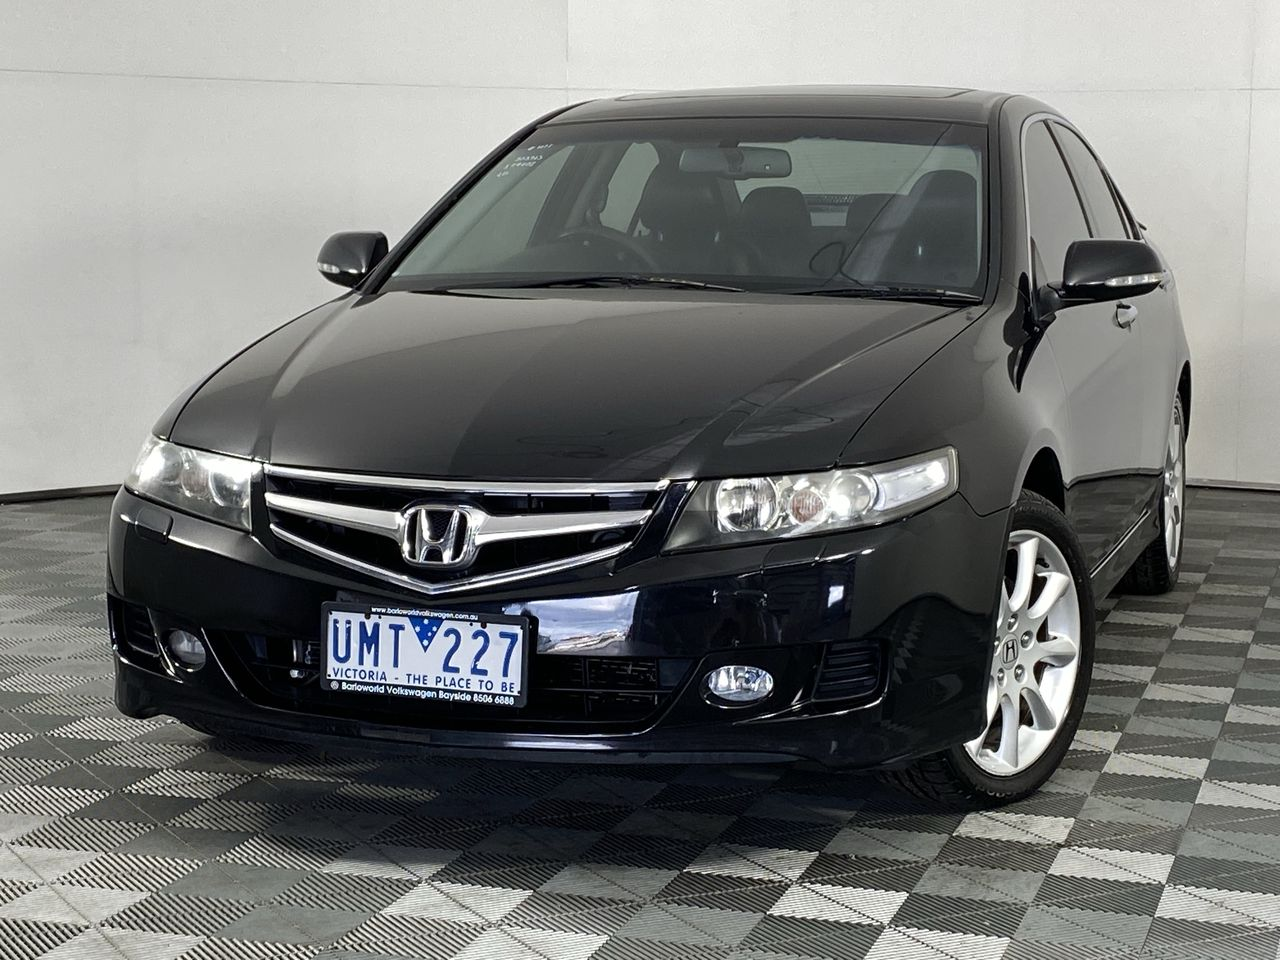 2006 Honda Accord Euro Luxury 7th Gen Automatic Sedan